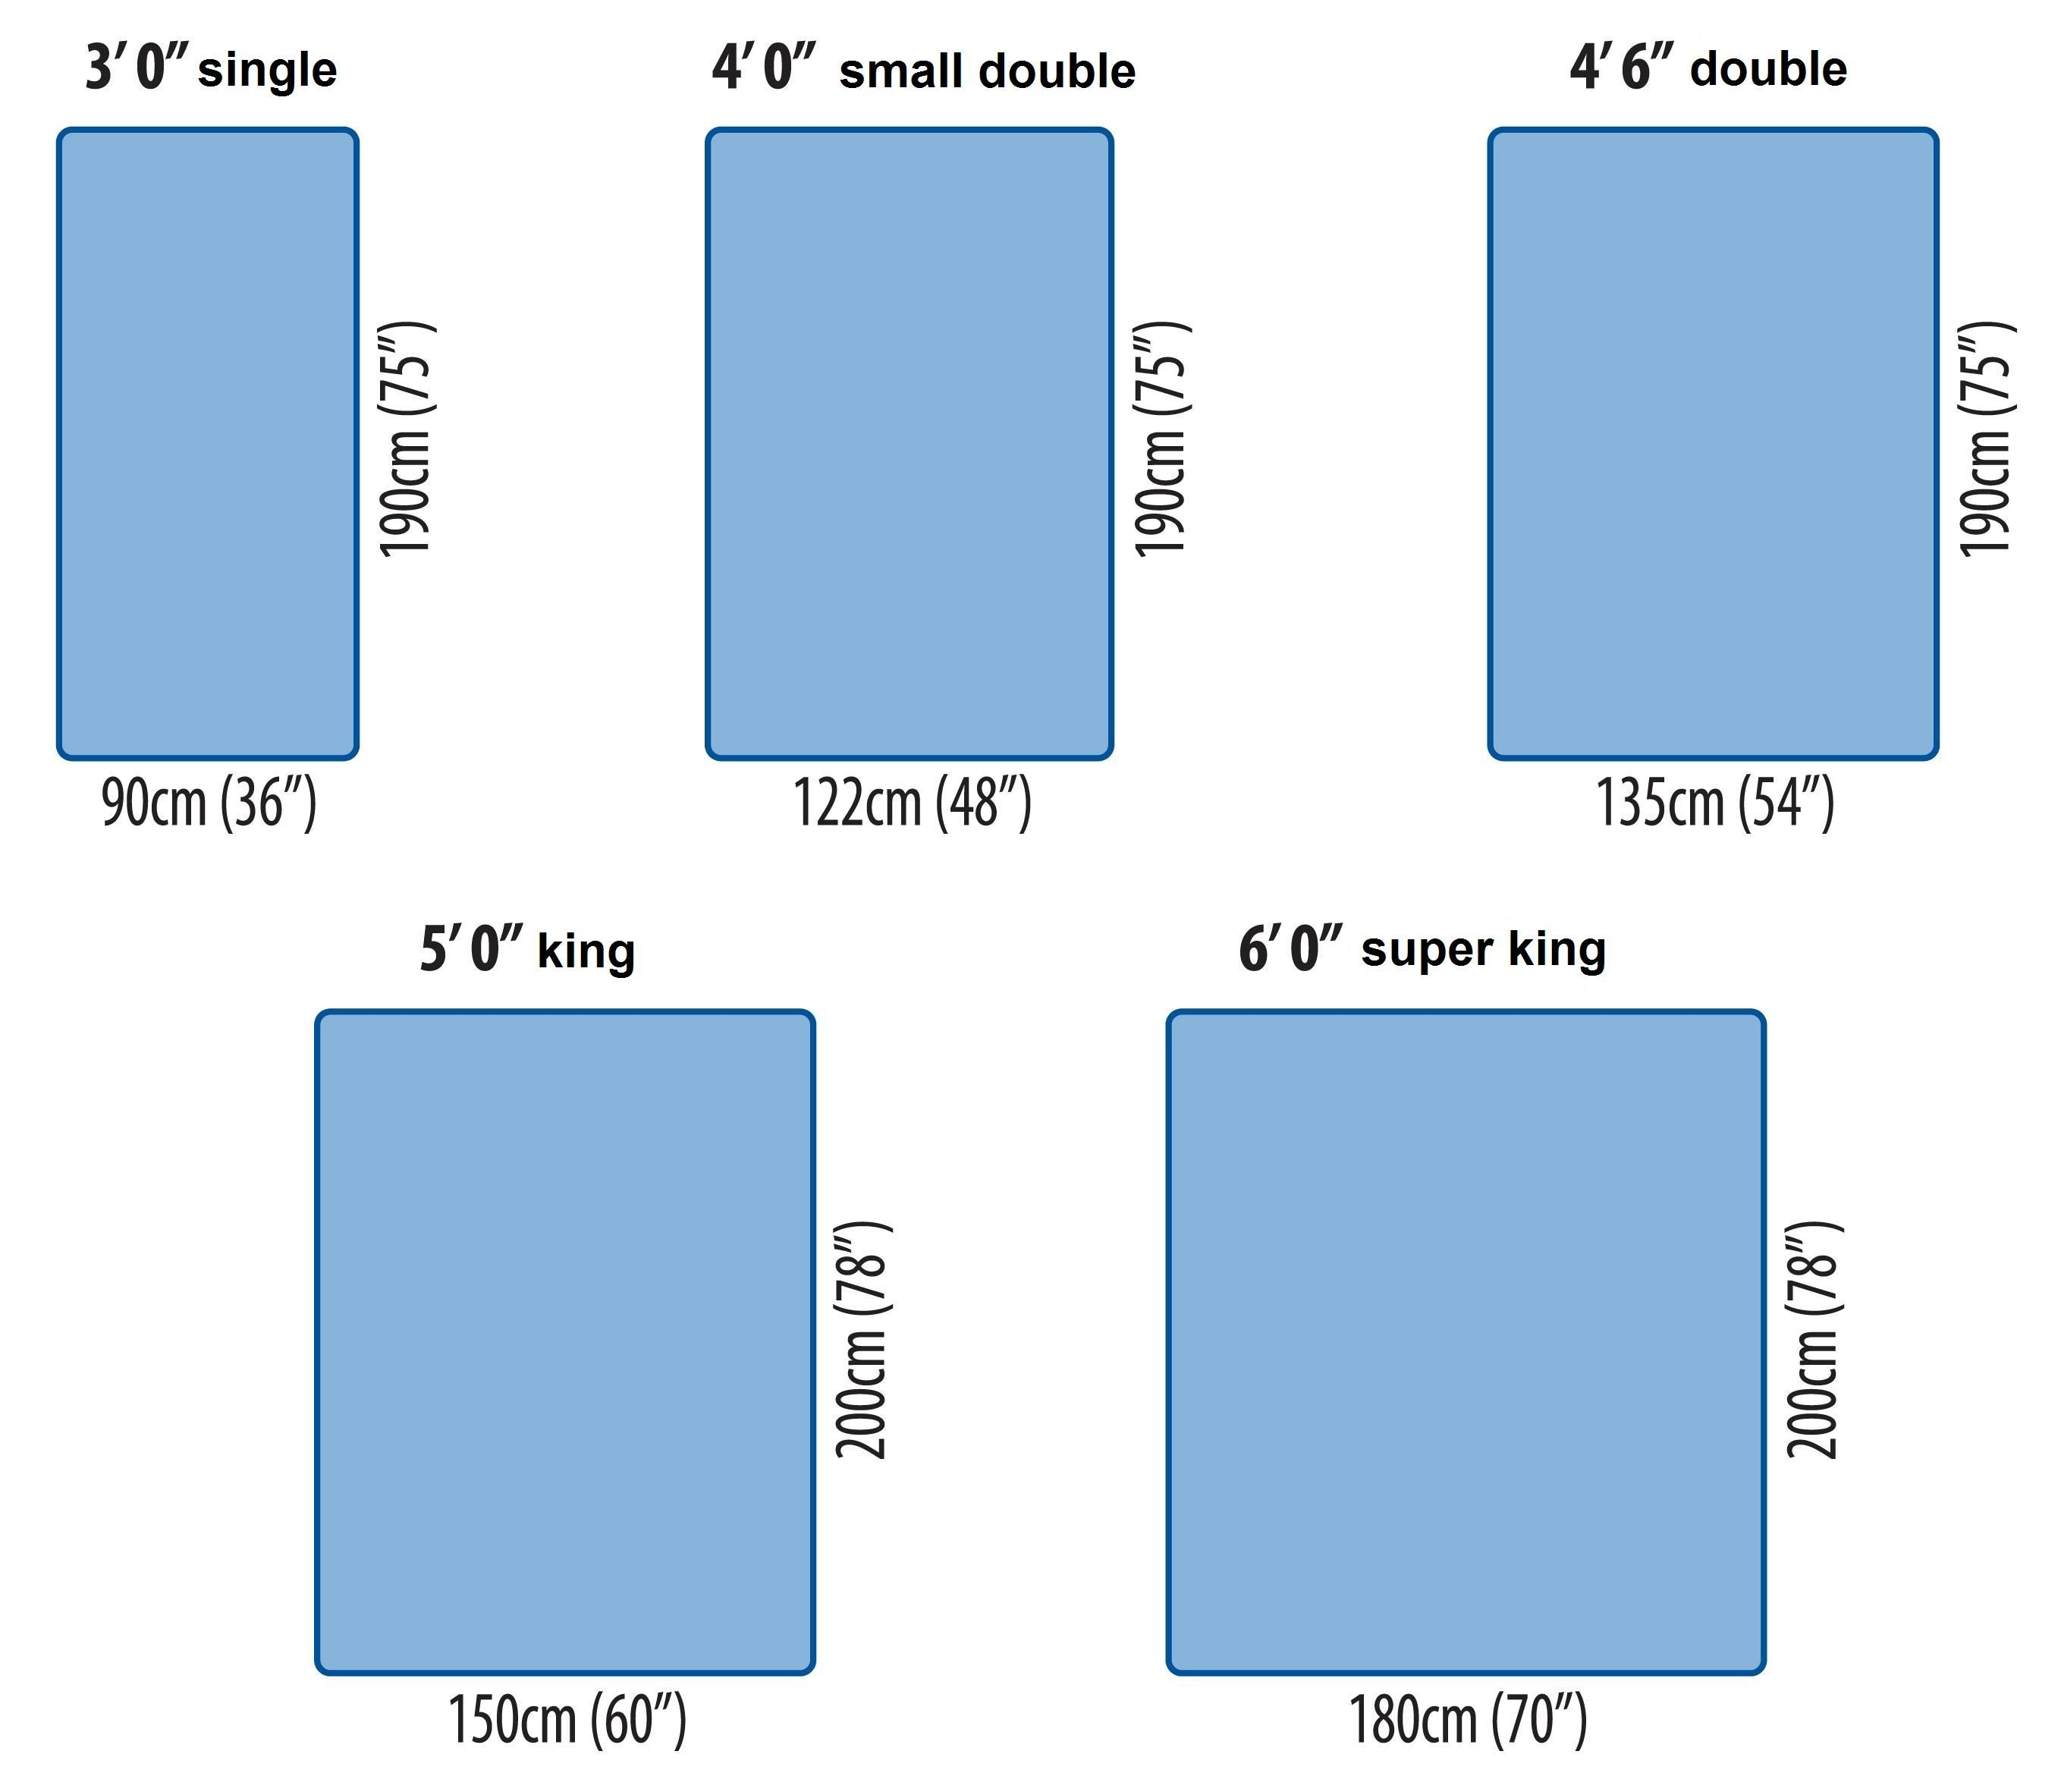 Single bed dimensions in mm - Bed Sizes Are Confusing